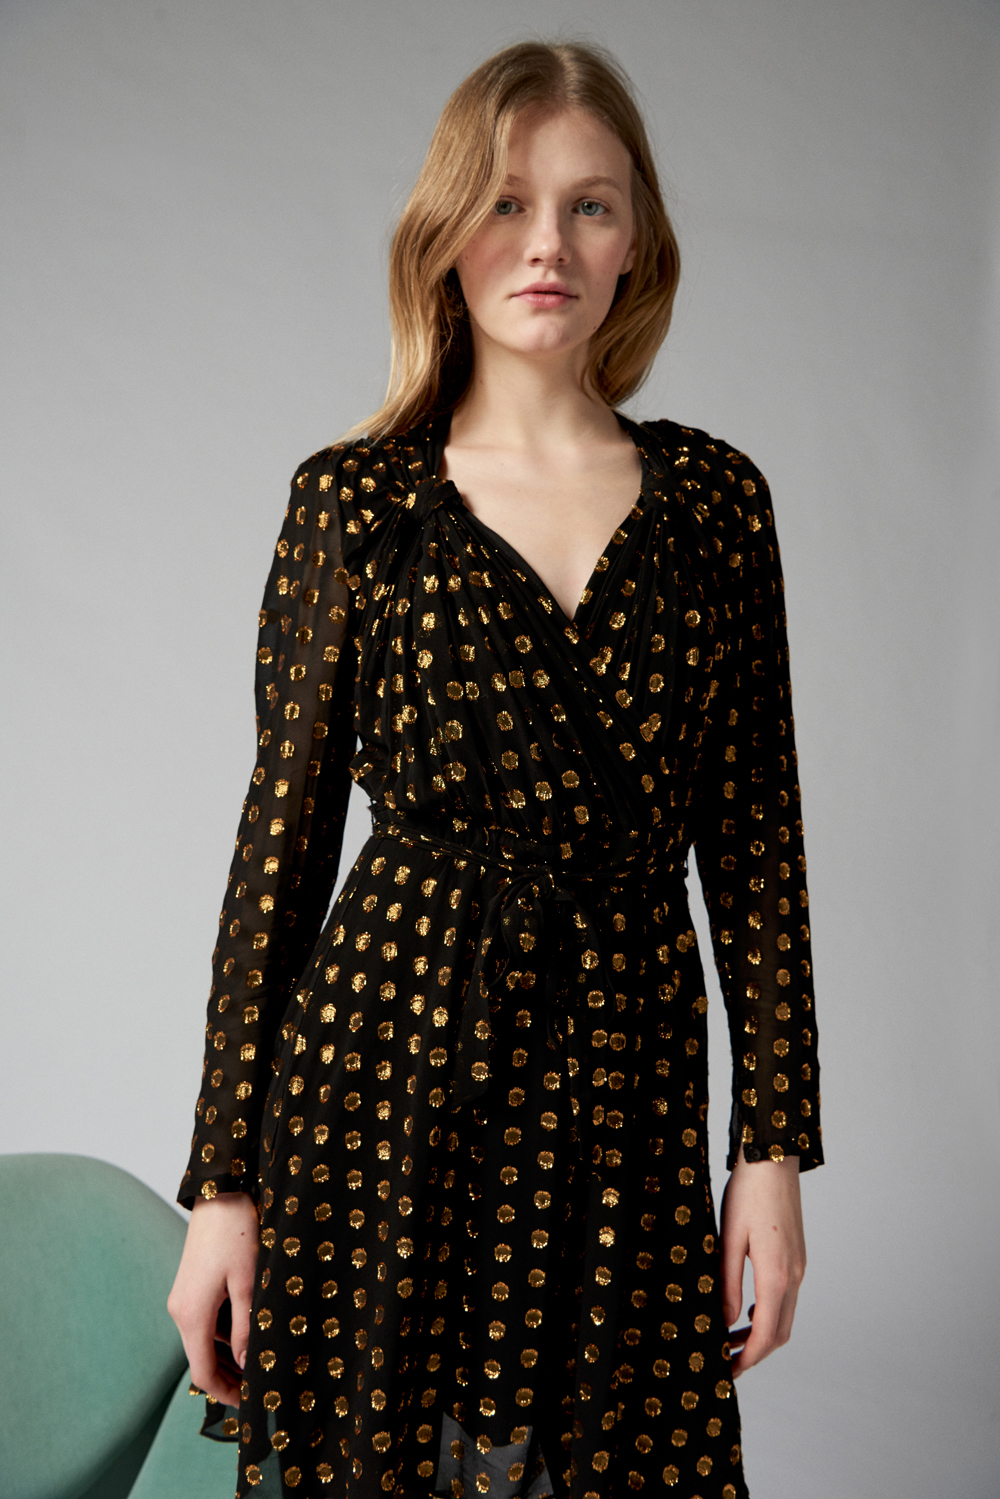 Black short dress with gold polka dots ANTIK BATIK | Dresses | DOVA1DREBLACK